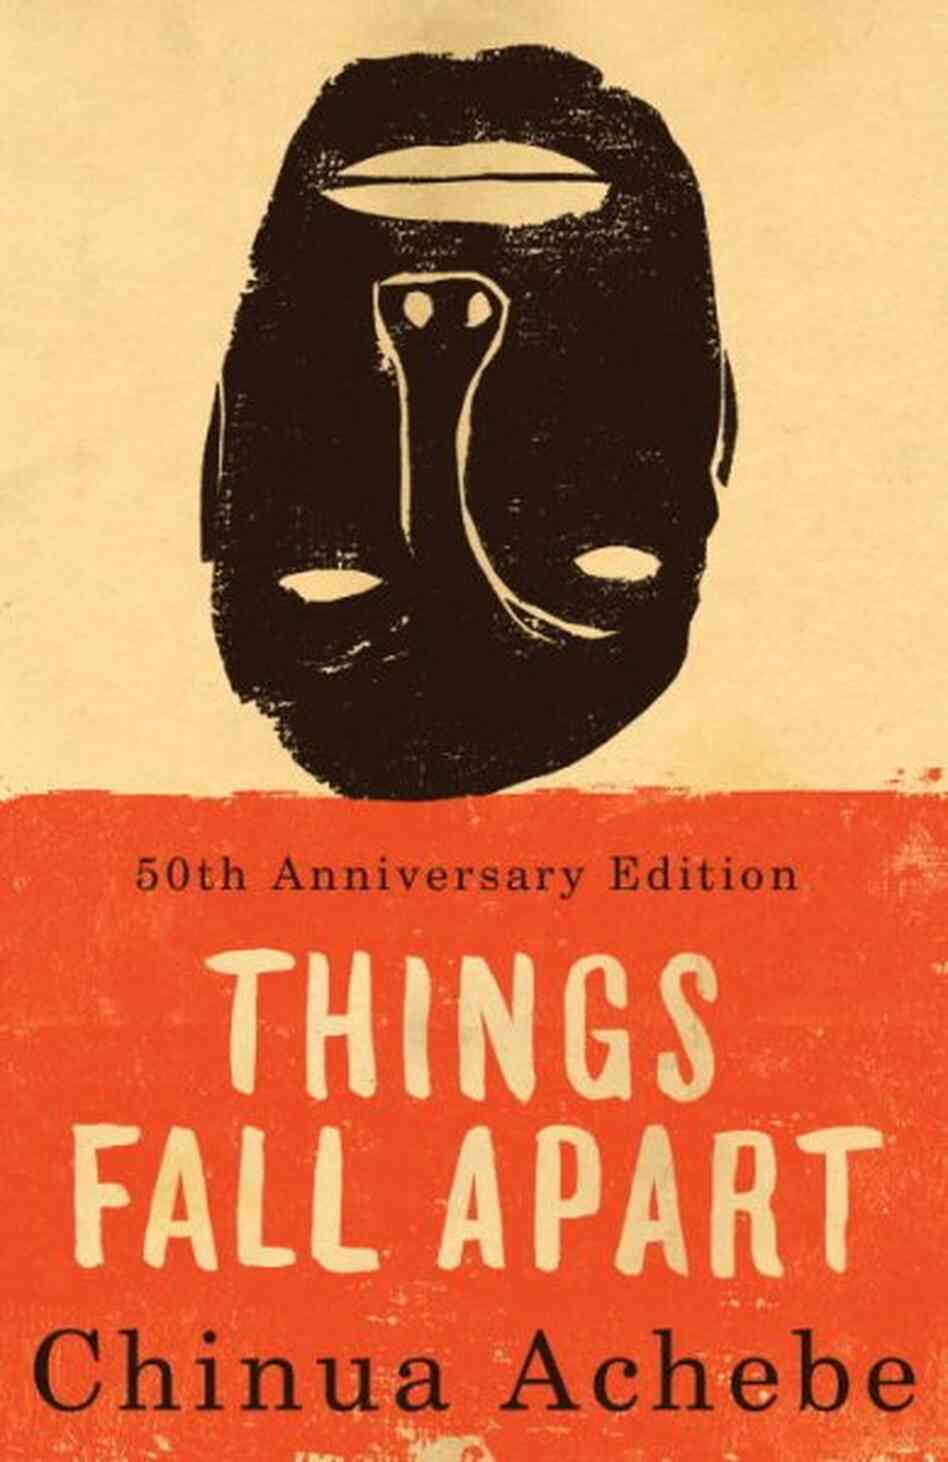 an essay on the novel things fall apart by chinua achebe The author and his/her times: things fall apart was published in 1958 and was written by chinua achebe, who was born in nigeria on november 16, 1930 and died on march 21, 2013.